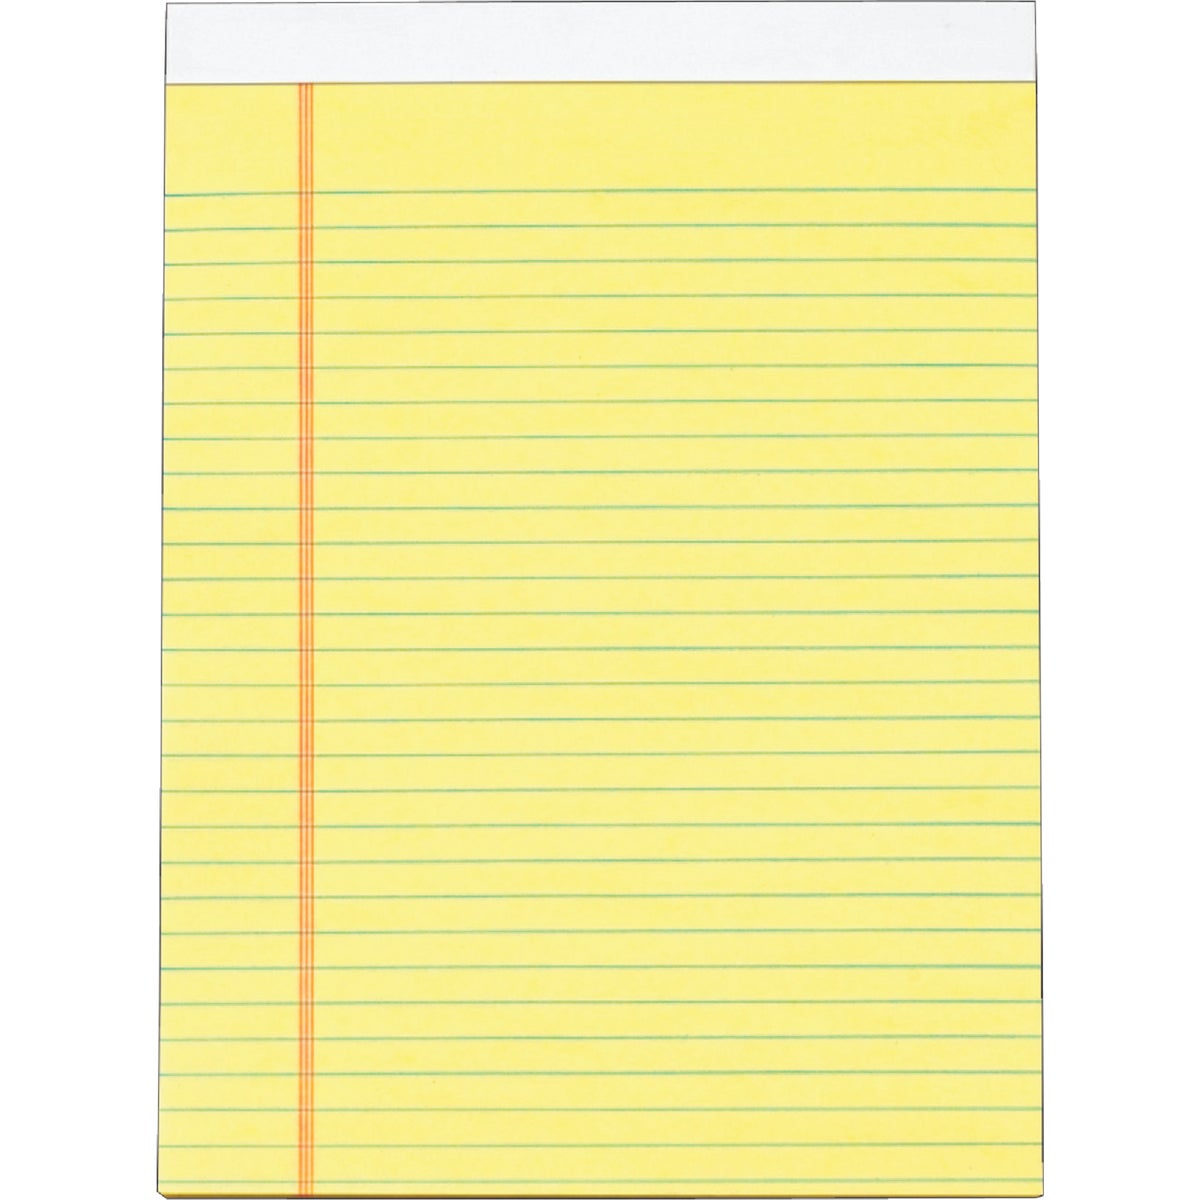 12 YELLOW LEGAL PAD - 683254 by Staples